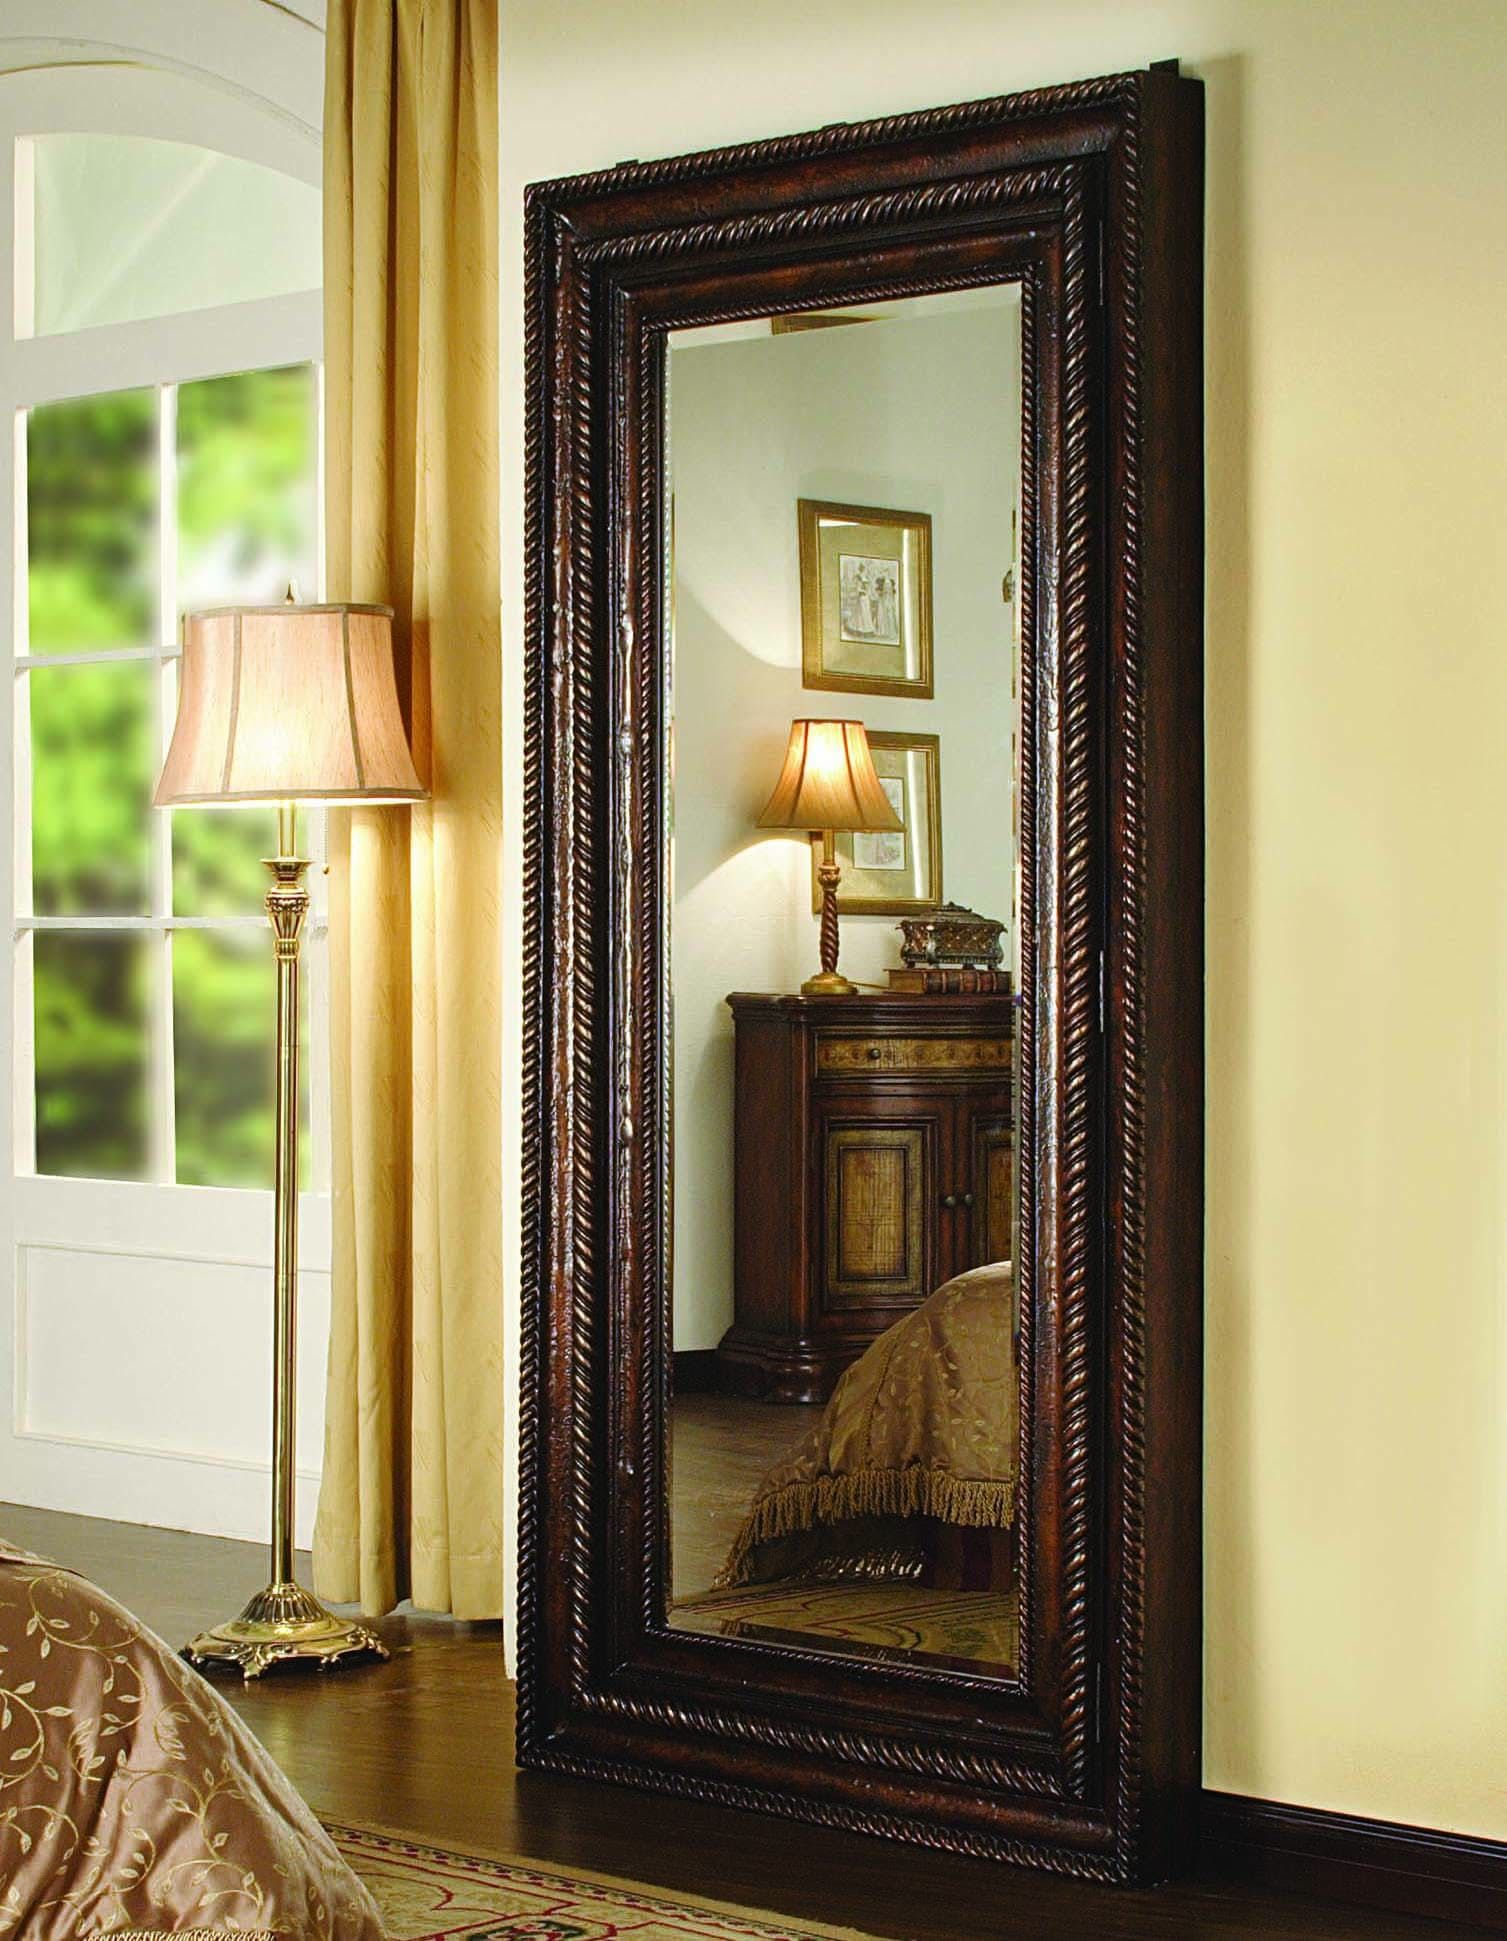 Hooker Furniture Floor Mirror wHidden Jewelry Storage 50050656